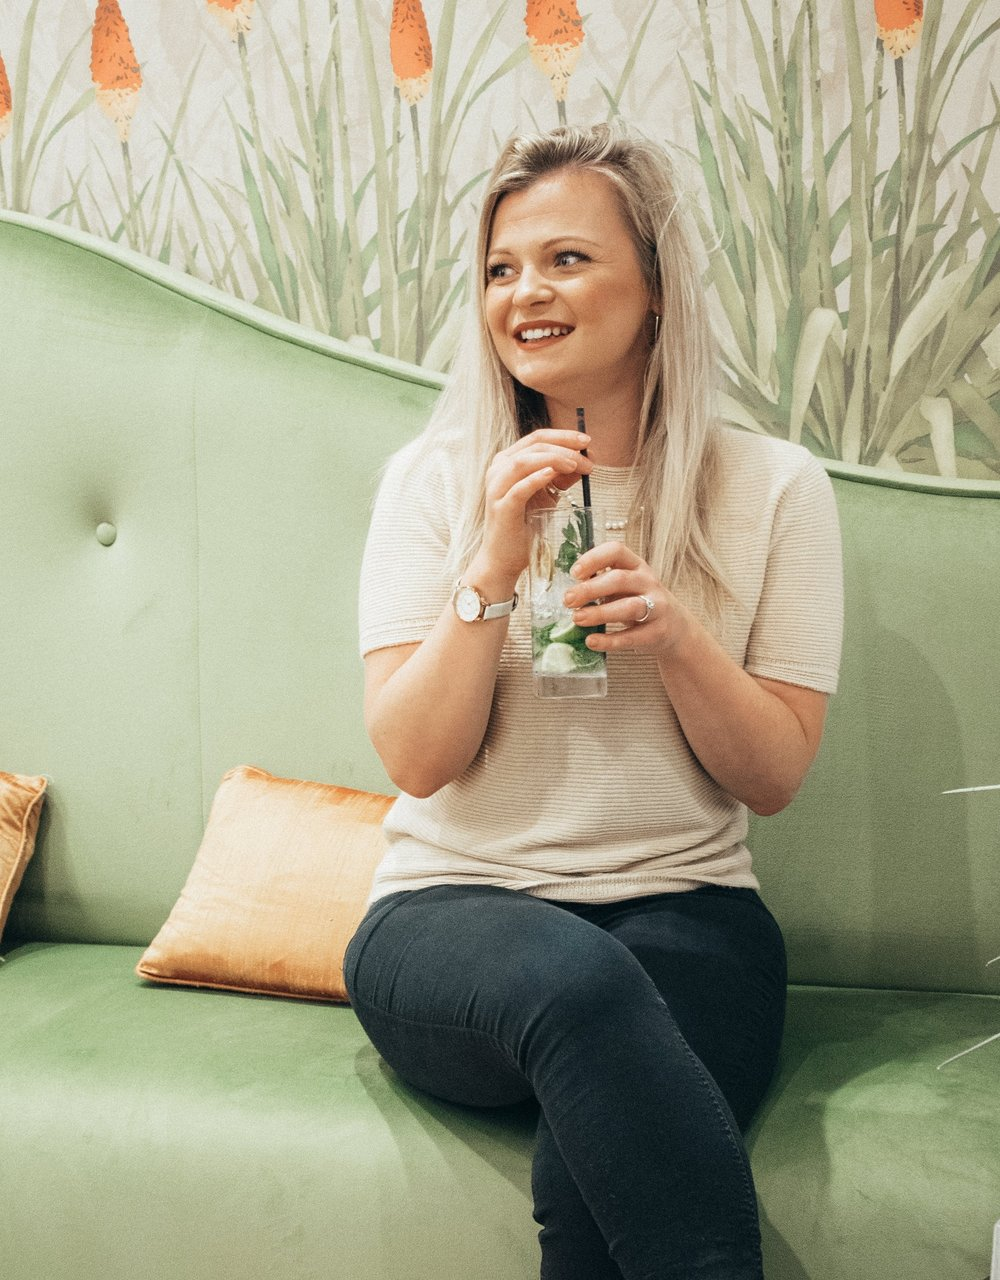 Meet the Blogger - Hey, I'm Claire.I'm a digital marketer, serial Blogger, and your personal digital cheerleader. When I'm not sipping on mojitos, I'm behind a screen sharing my secrets and inspiration to help you reach your dreams.I'm so happy you're here!